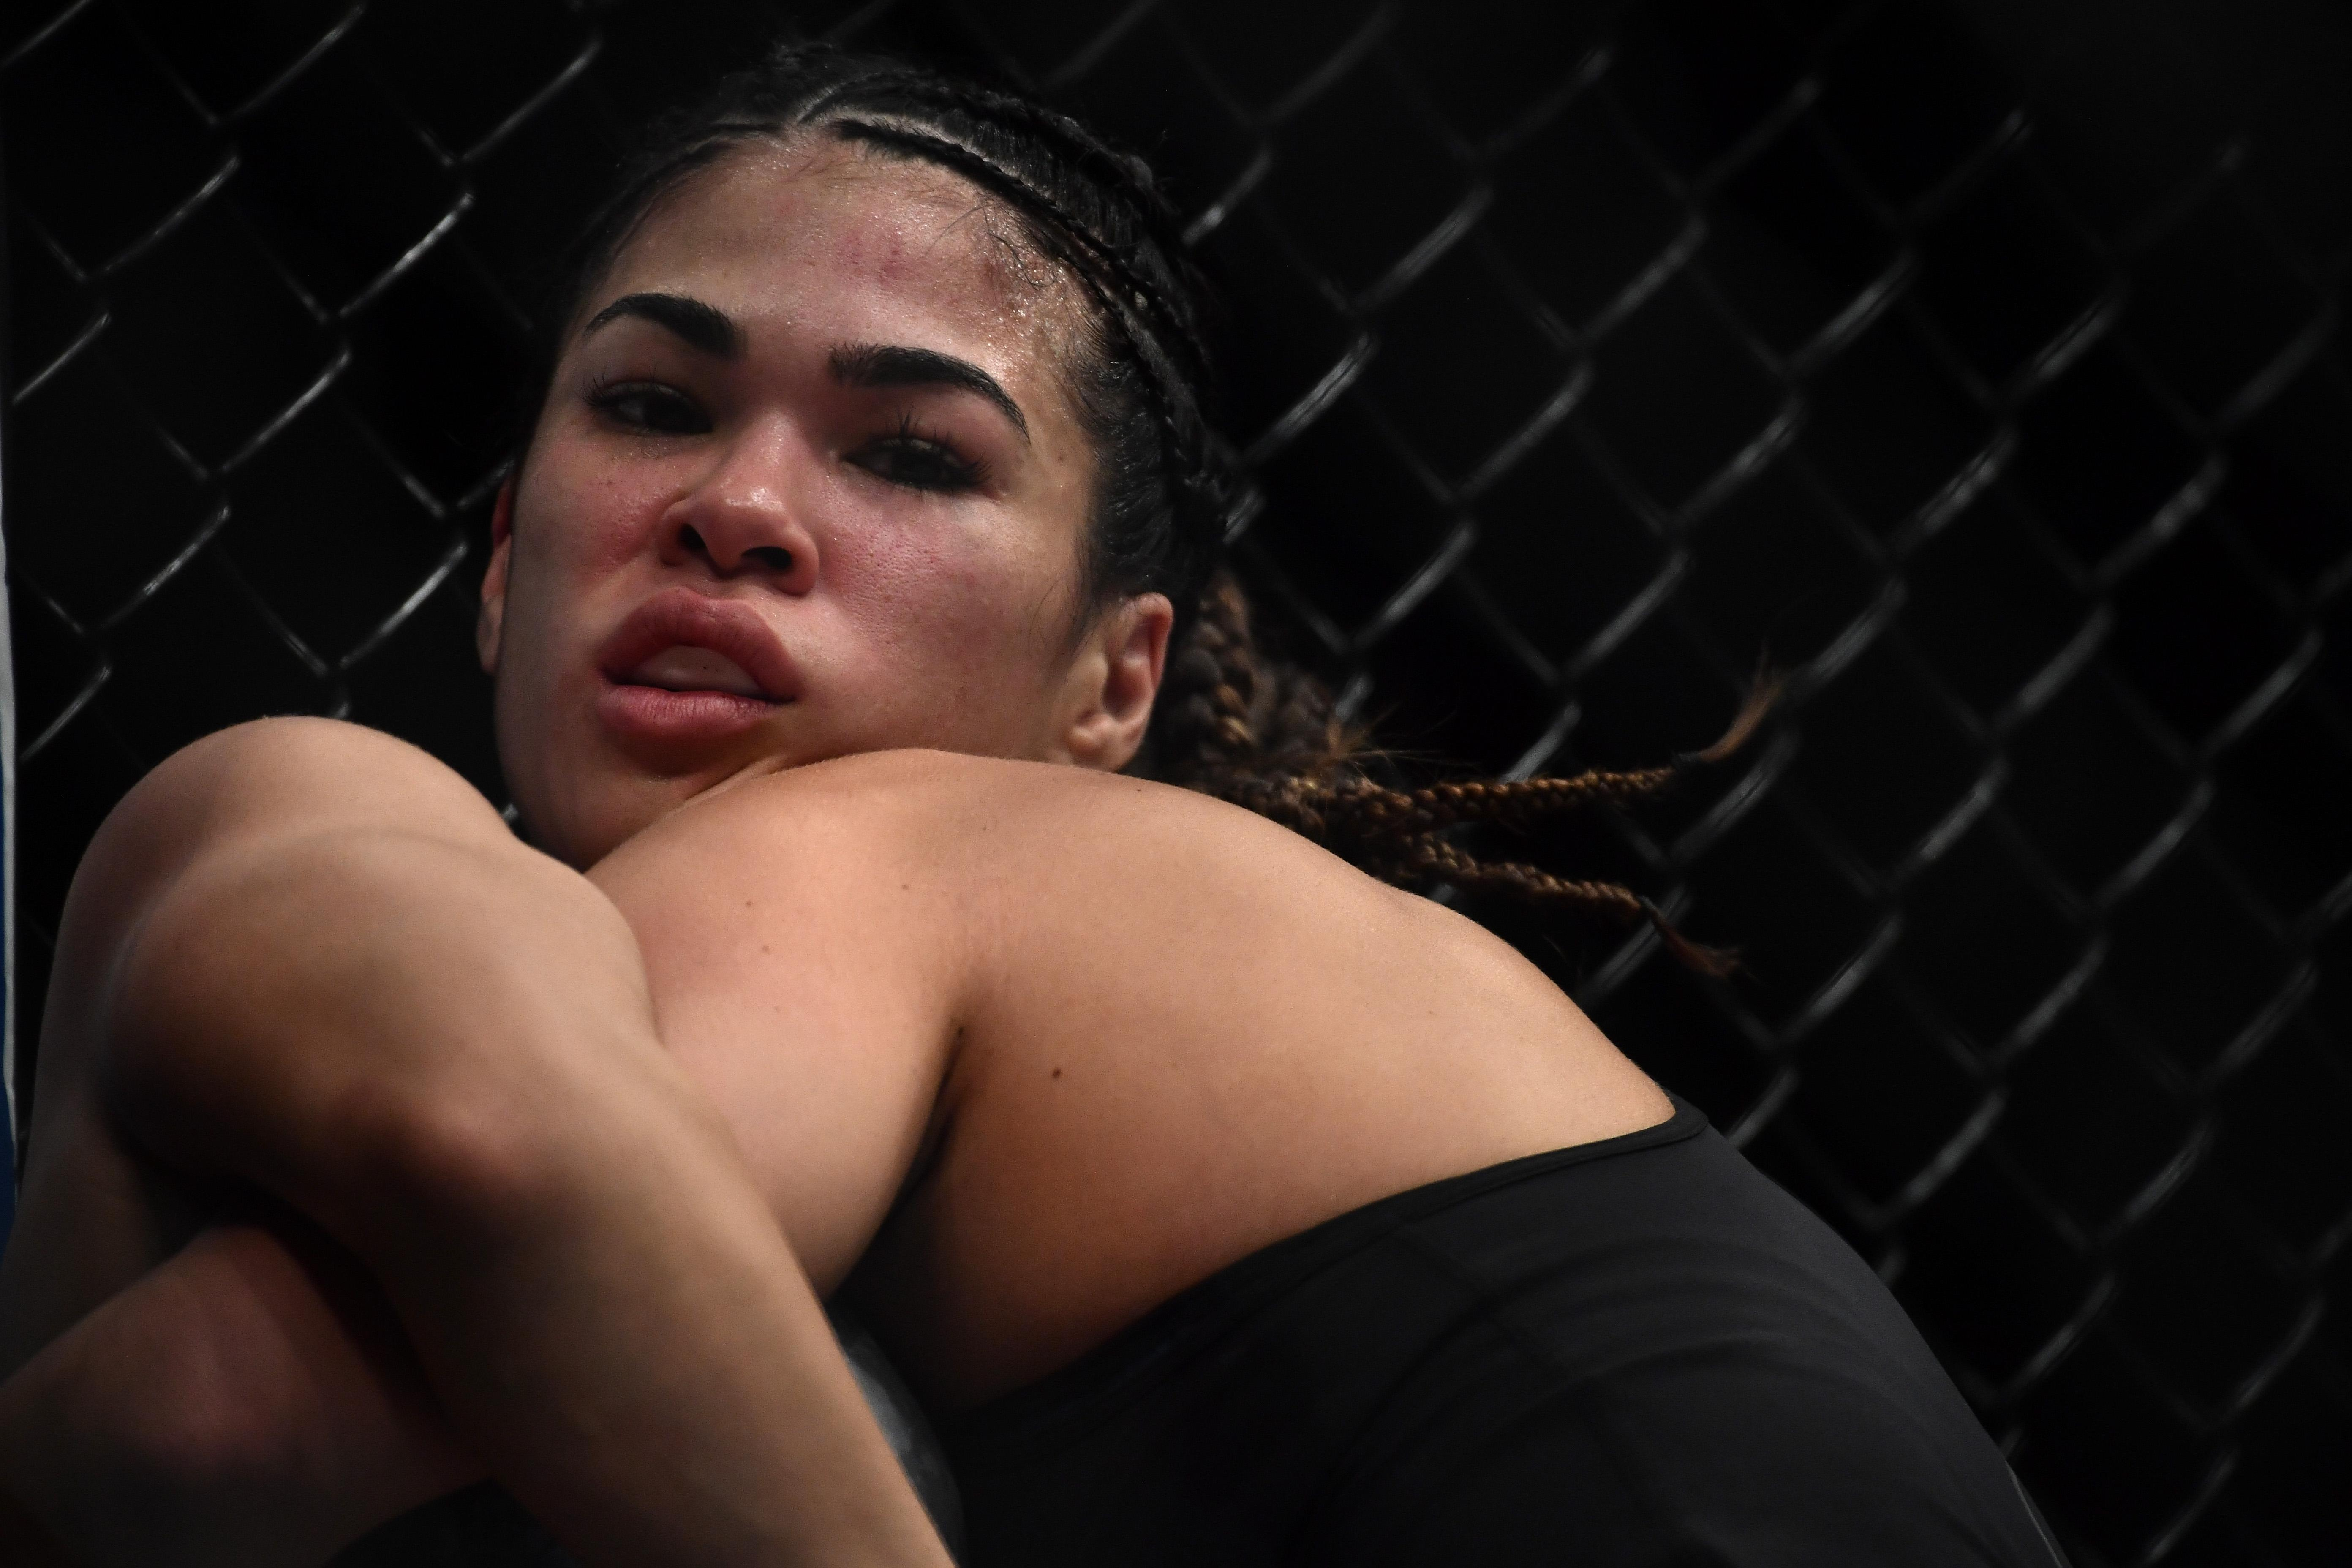 Rachael Ostovich is said to have suffered a broken eye socket in the attack